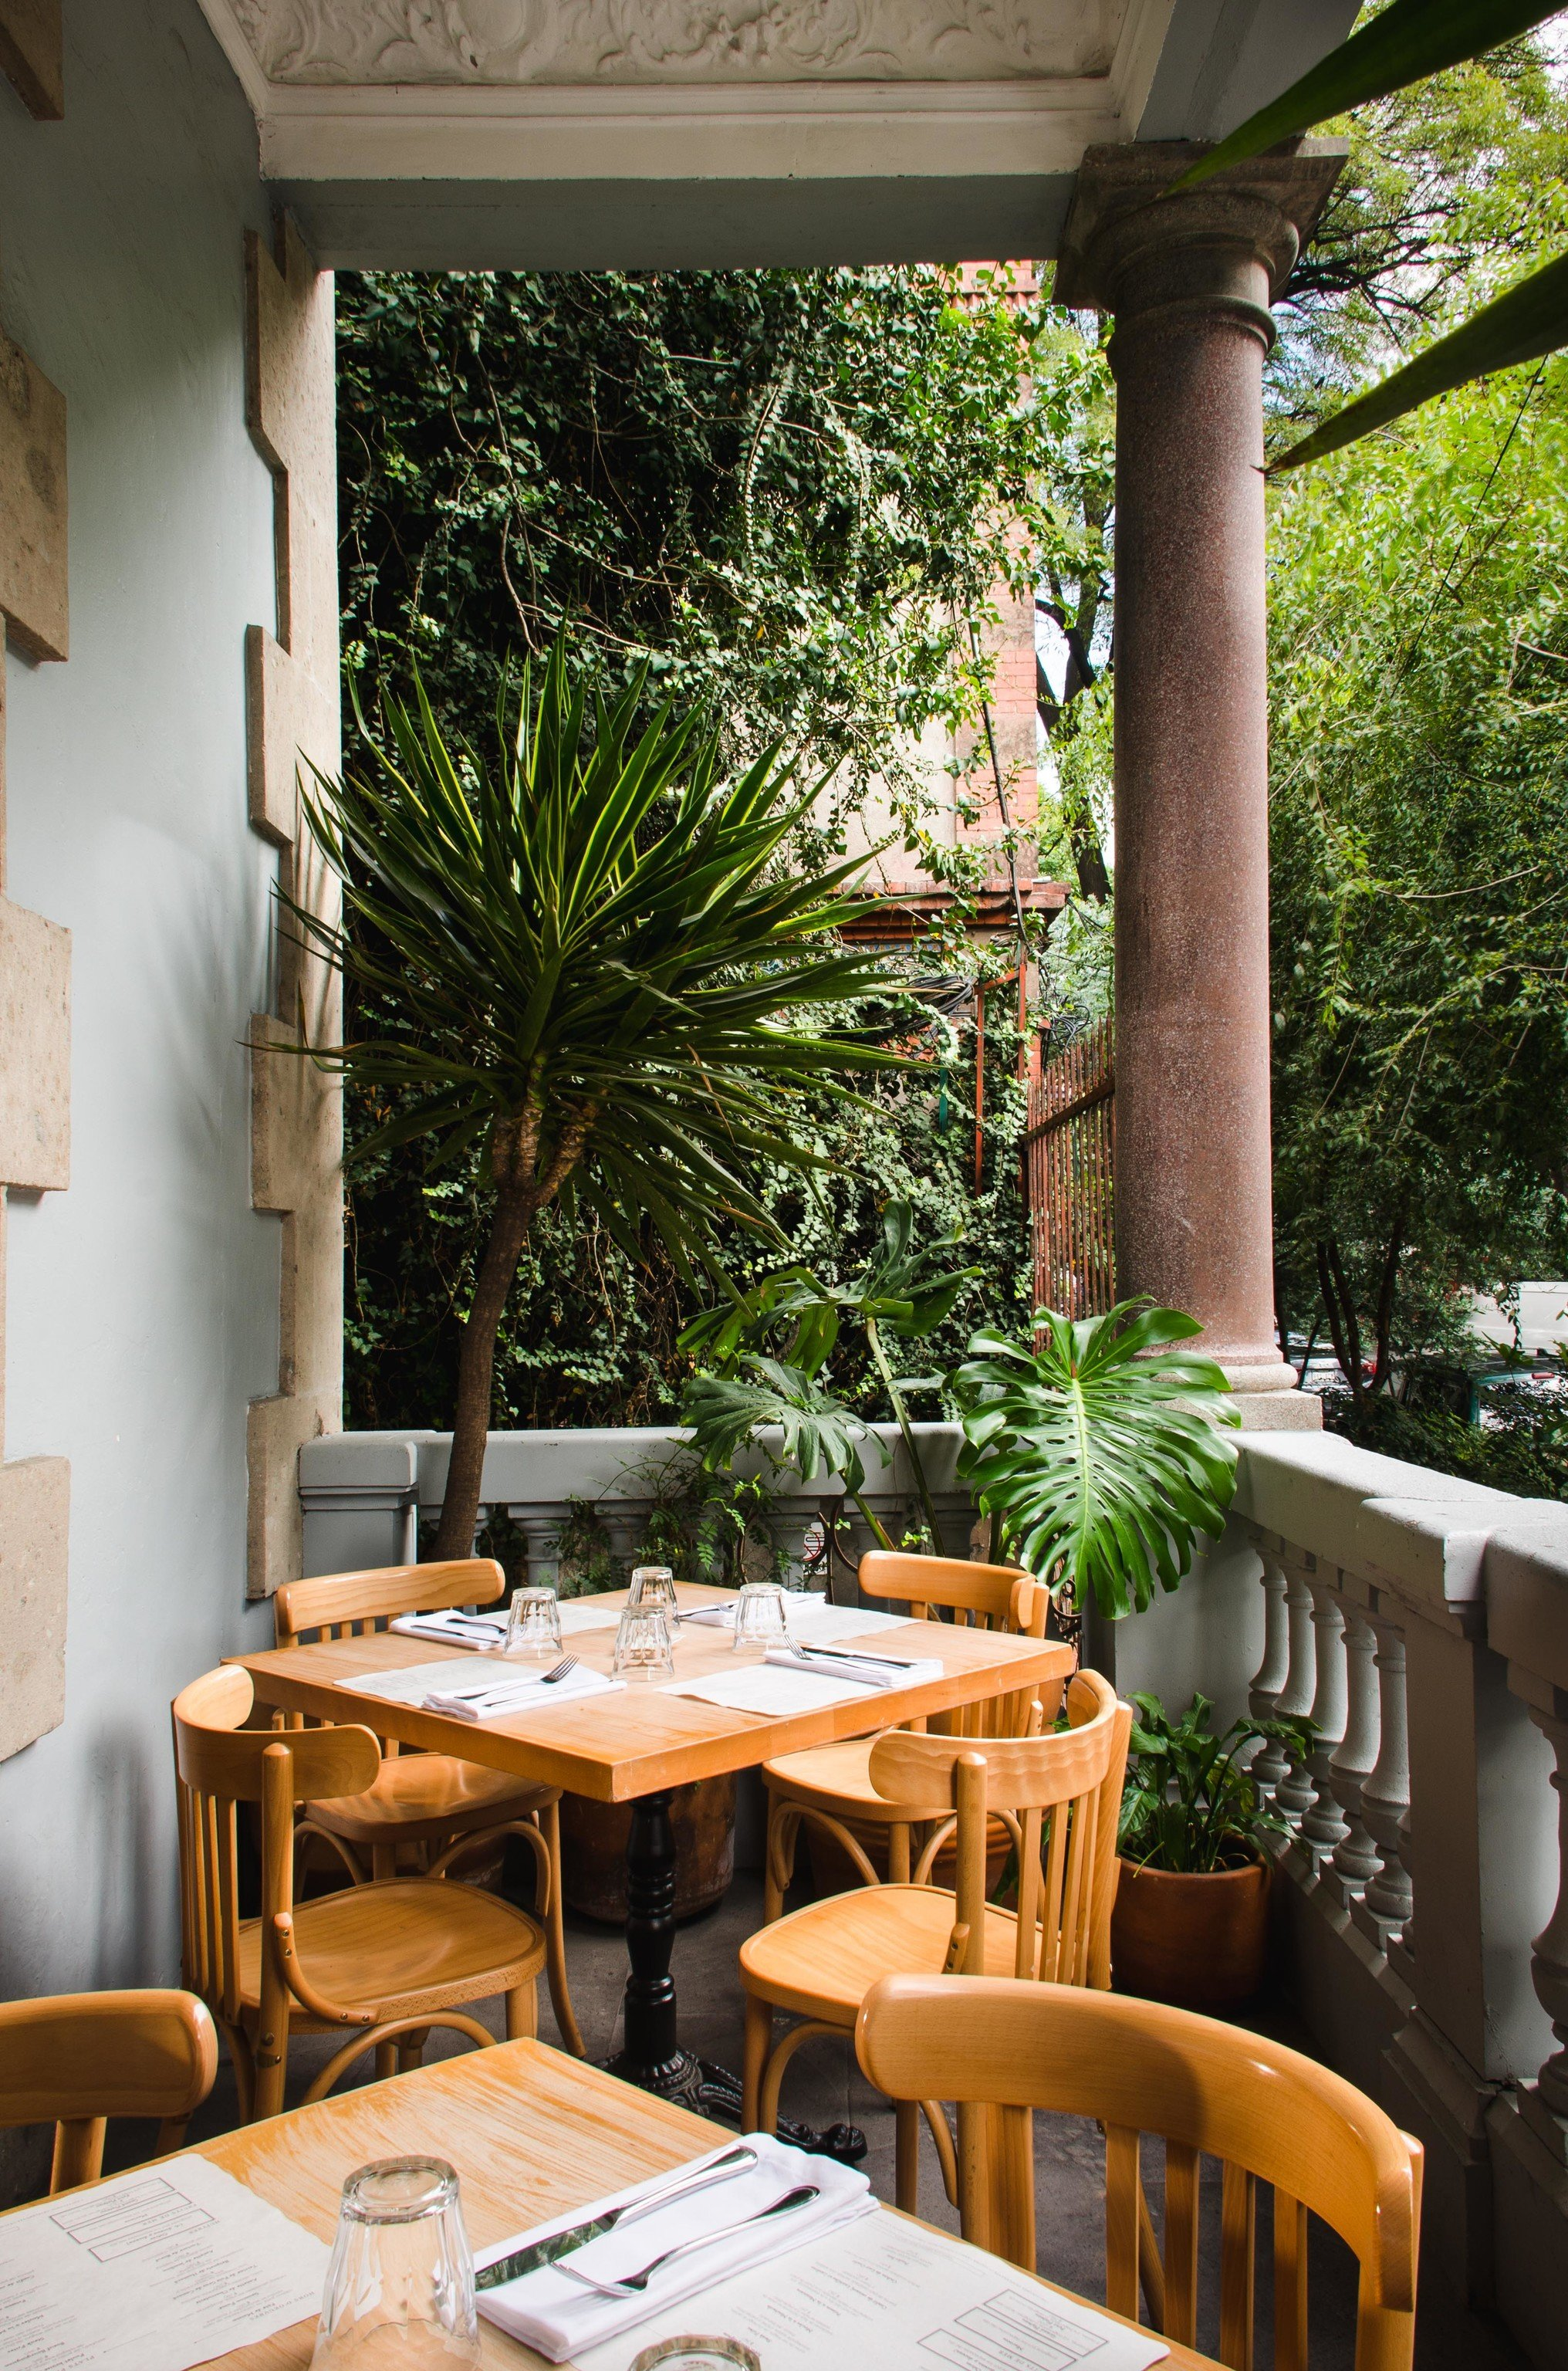 City Mexico City Trip Ideas tree table chair outdoor restaurant home interior design outdoor structure furniture house Patio café window plant porch area